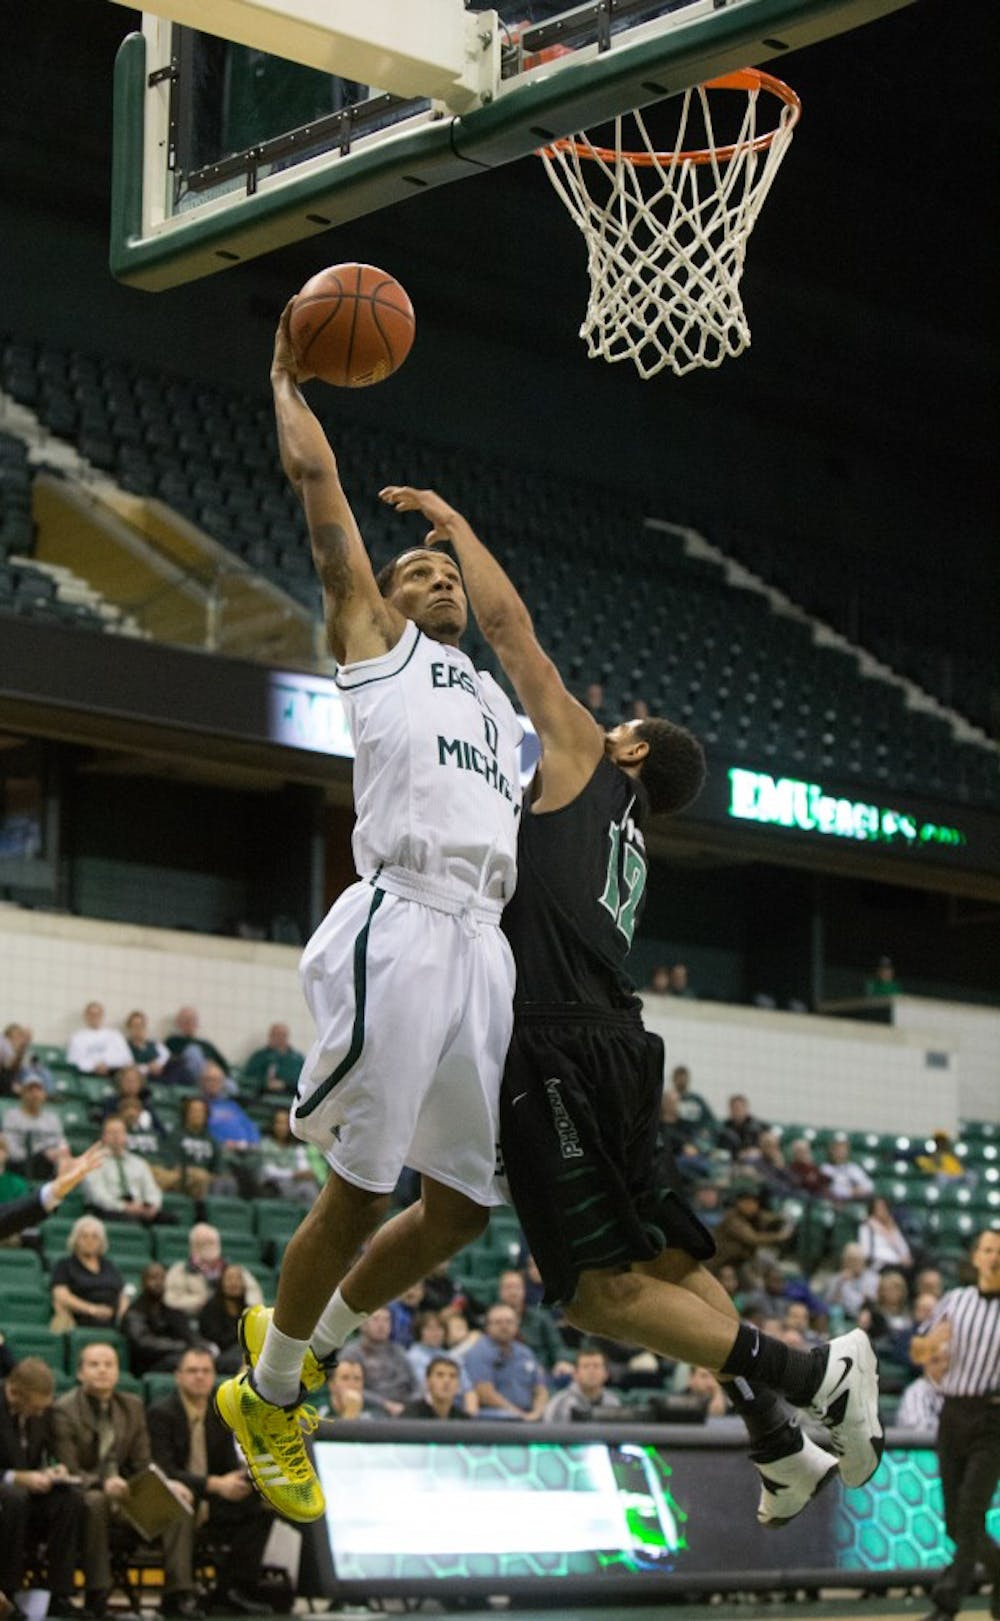 EMU knocks off Wisconsin-Green Bay, 67-58